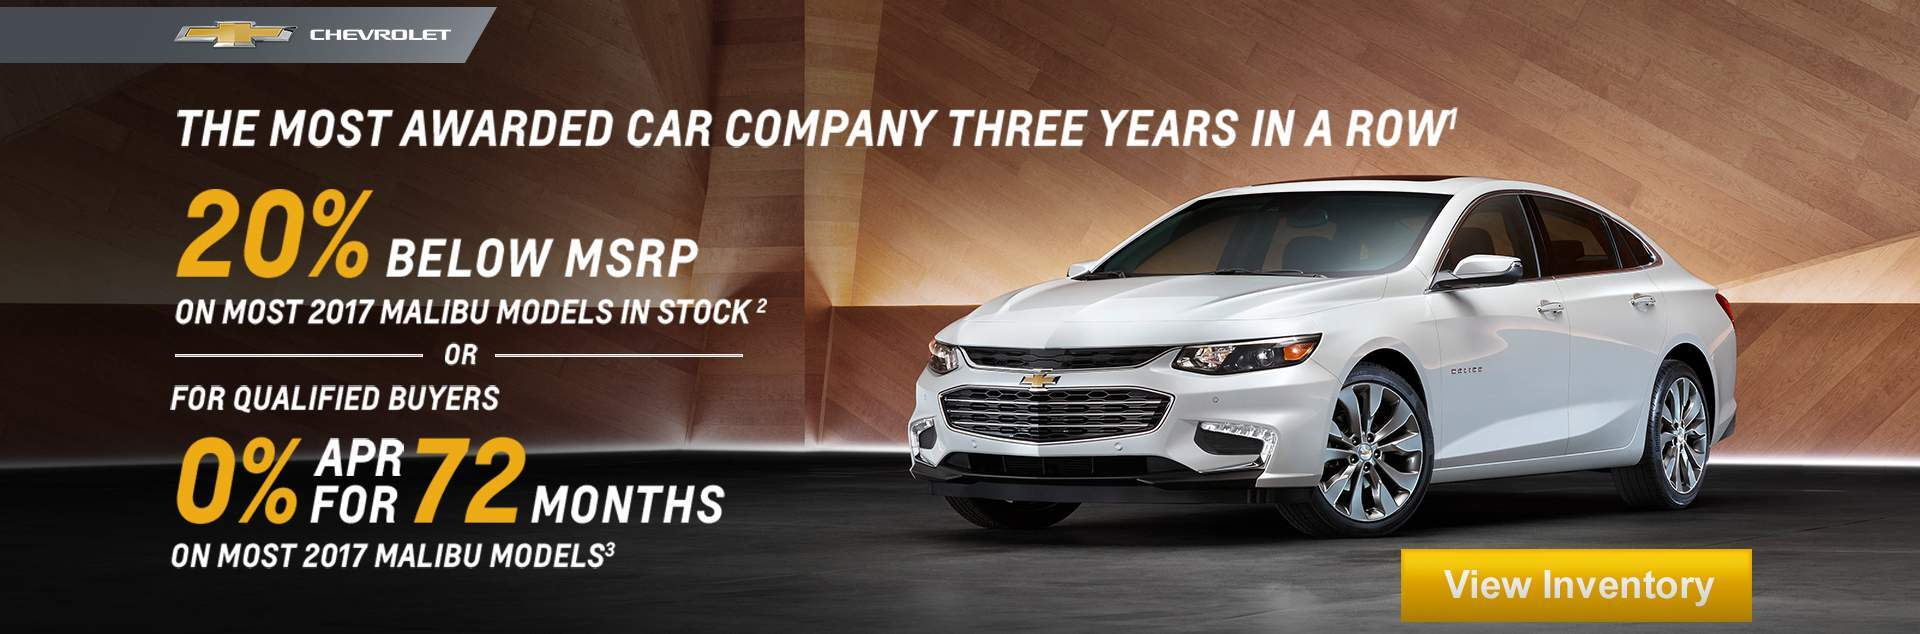 2017 Chevrolet Malibu 20% Off MSRP